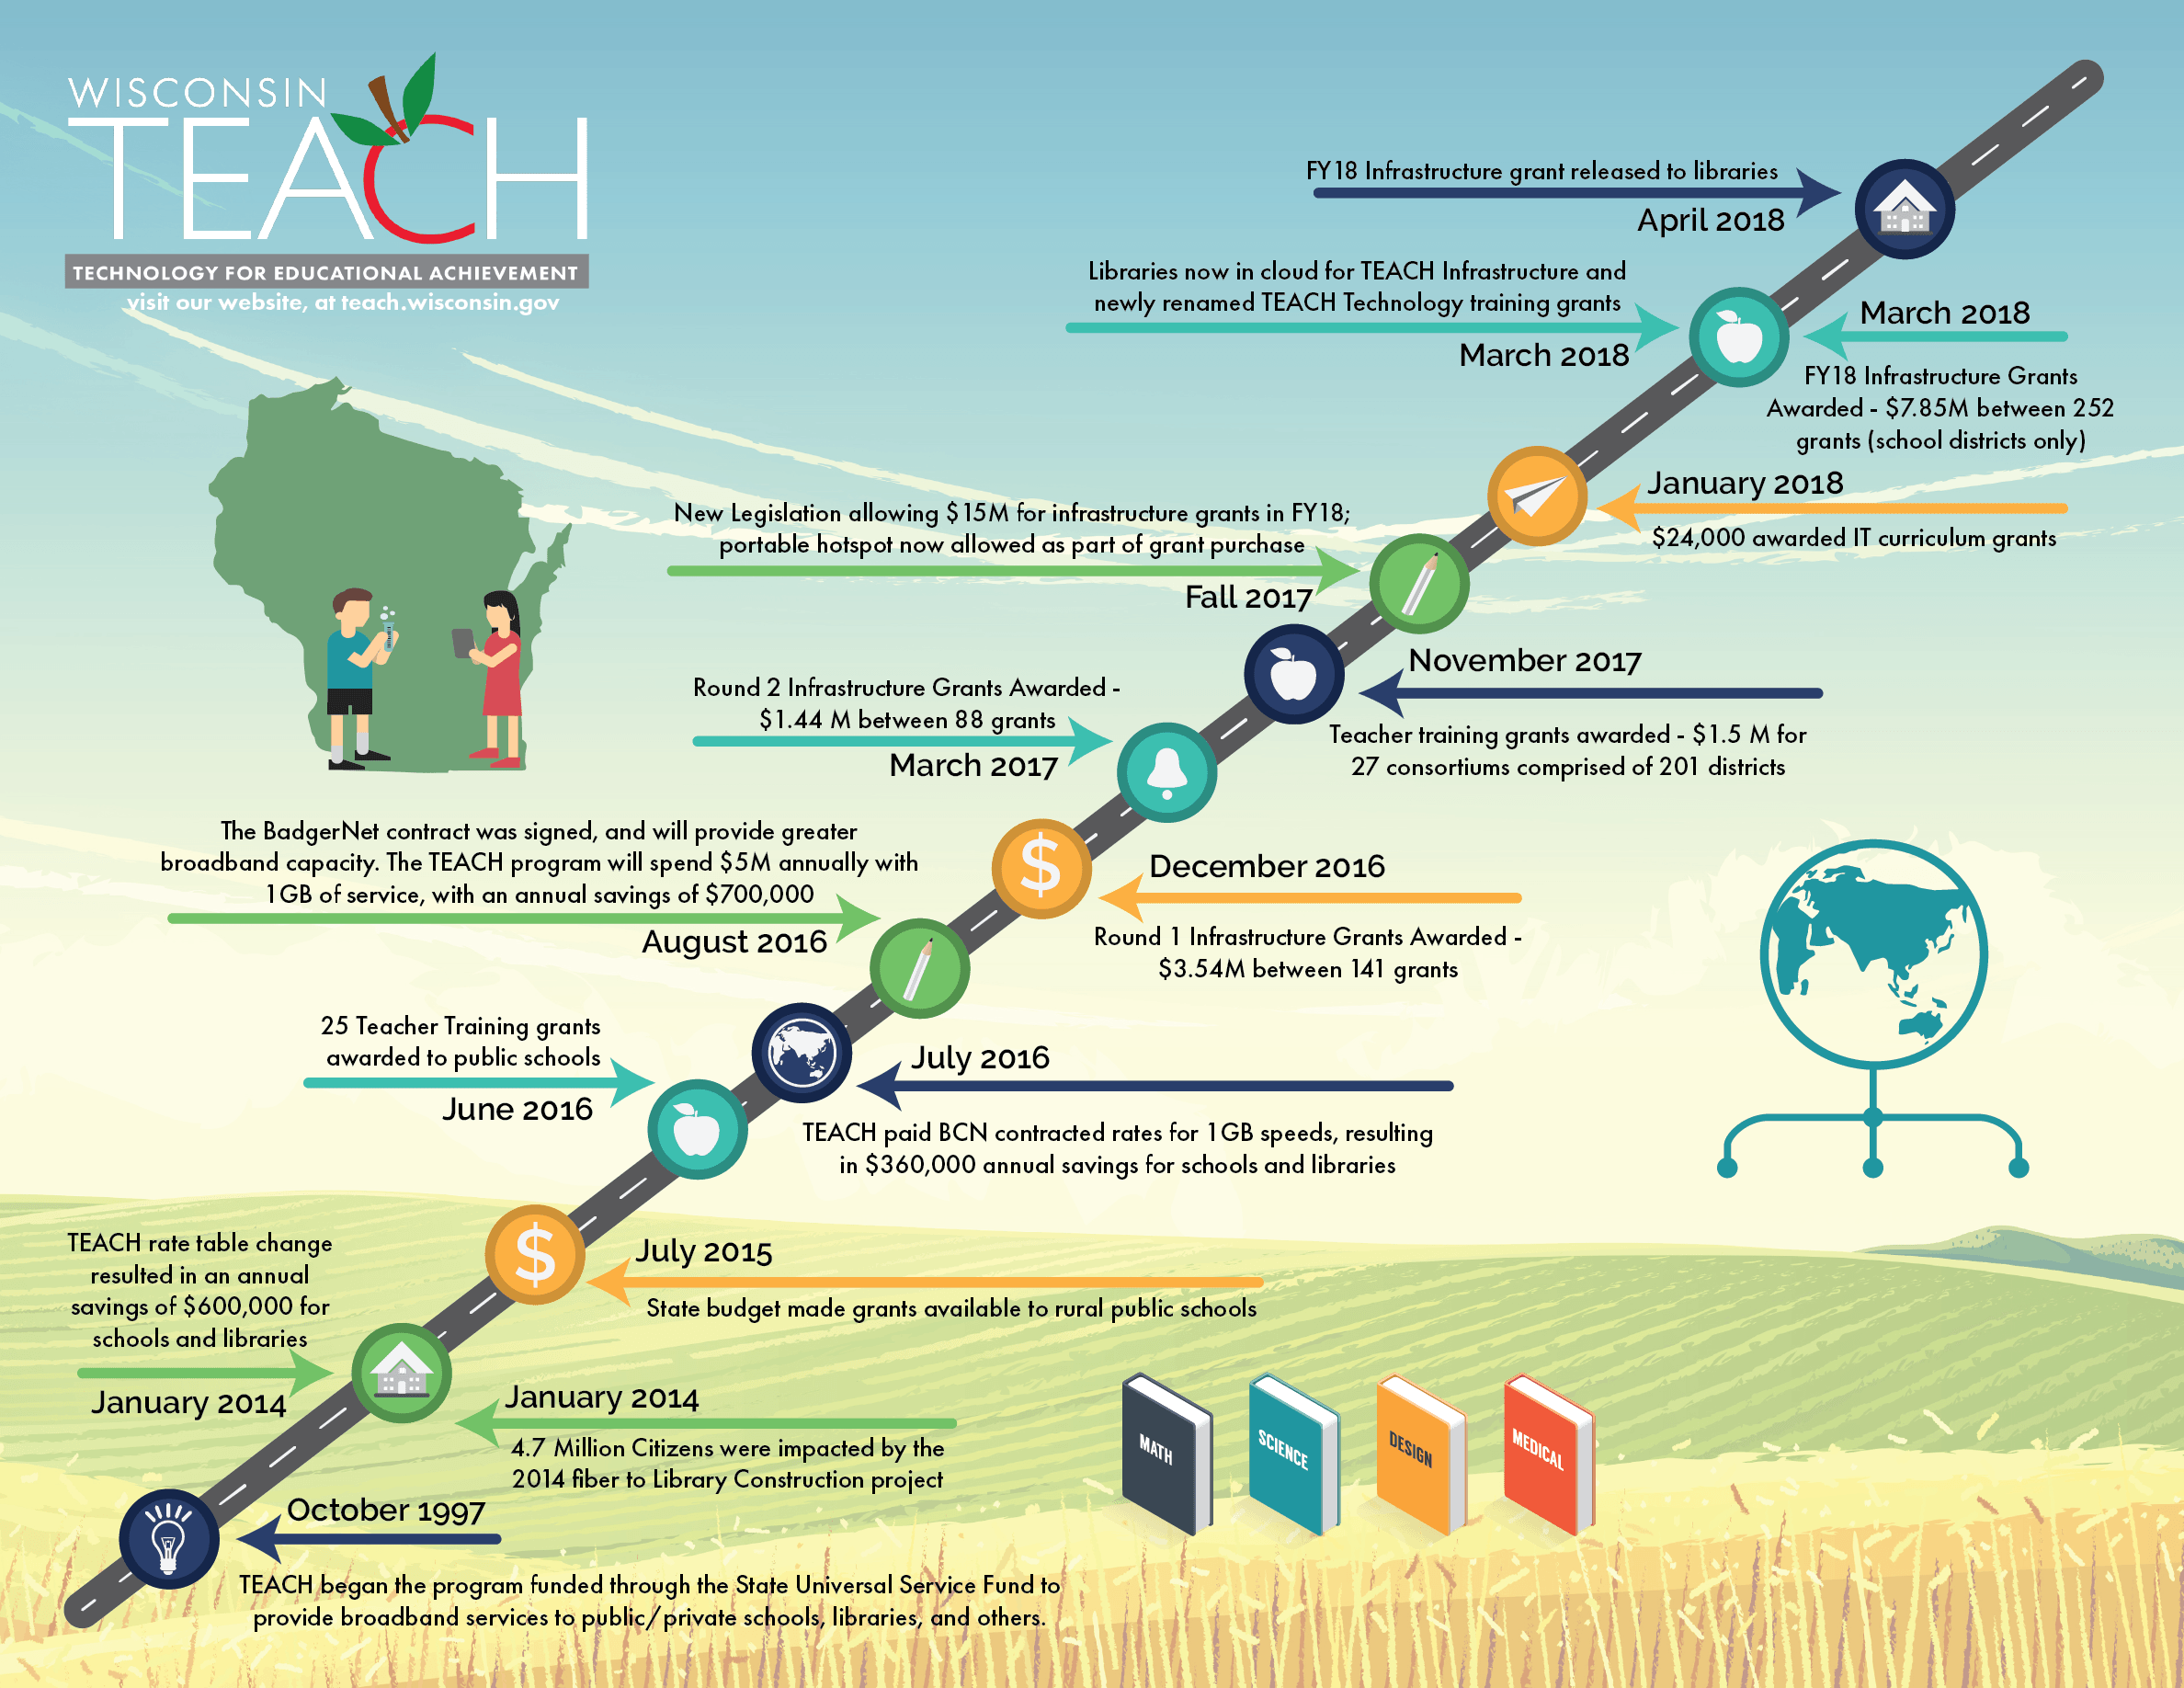 TEACH Roadmap